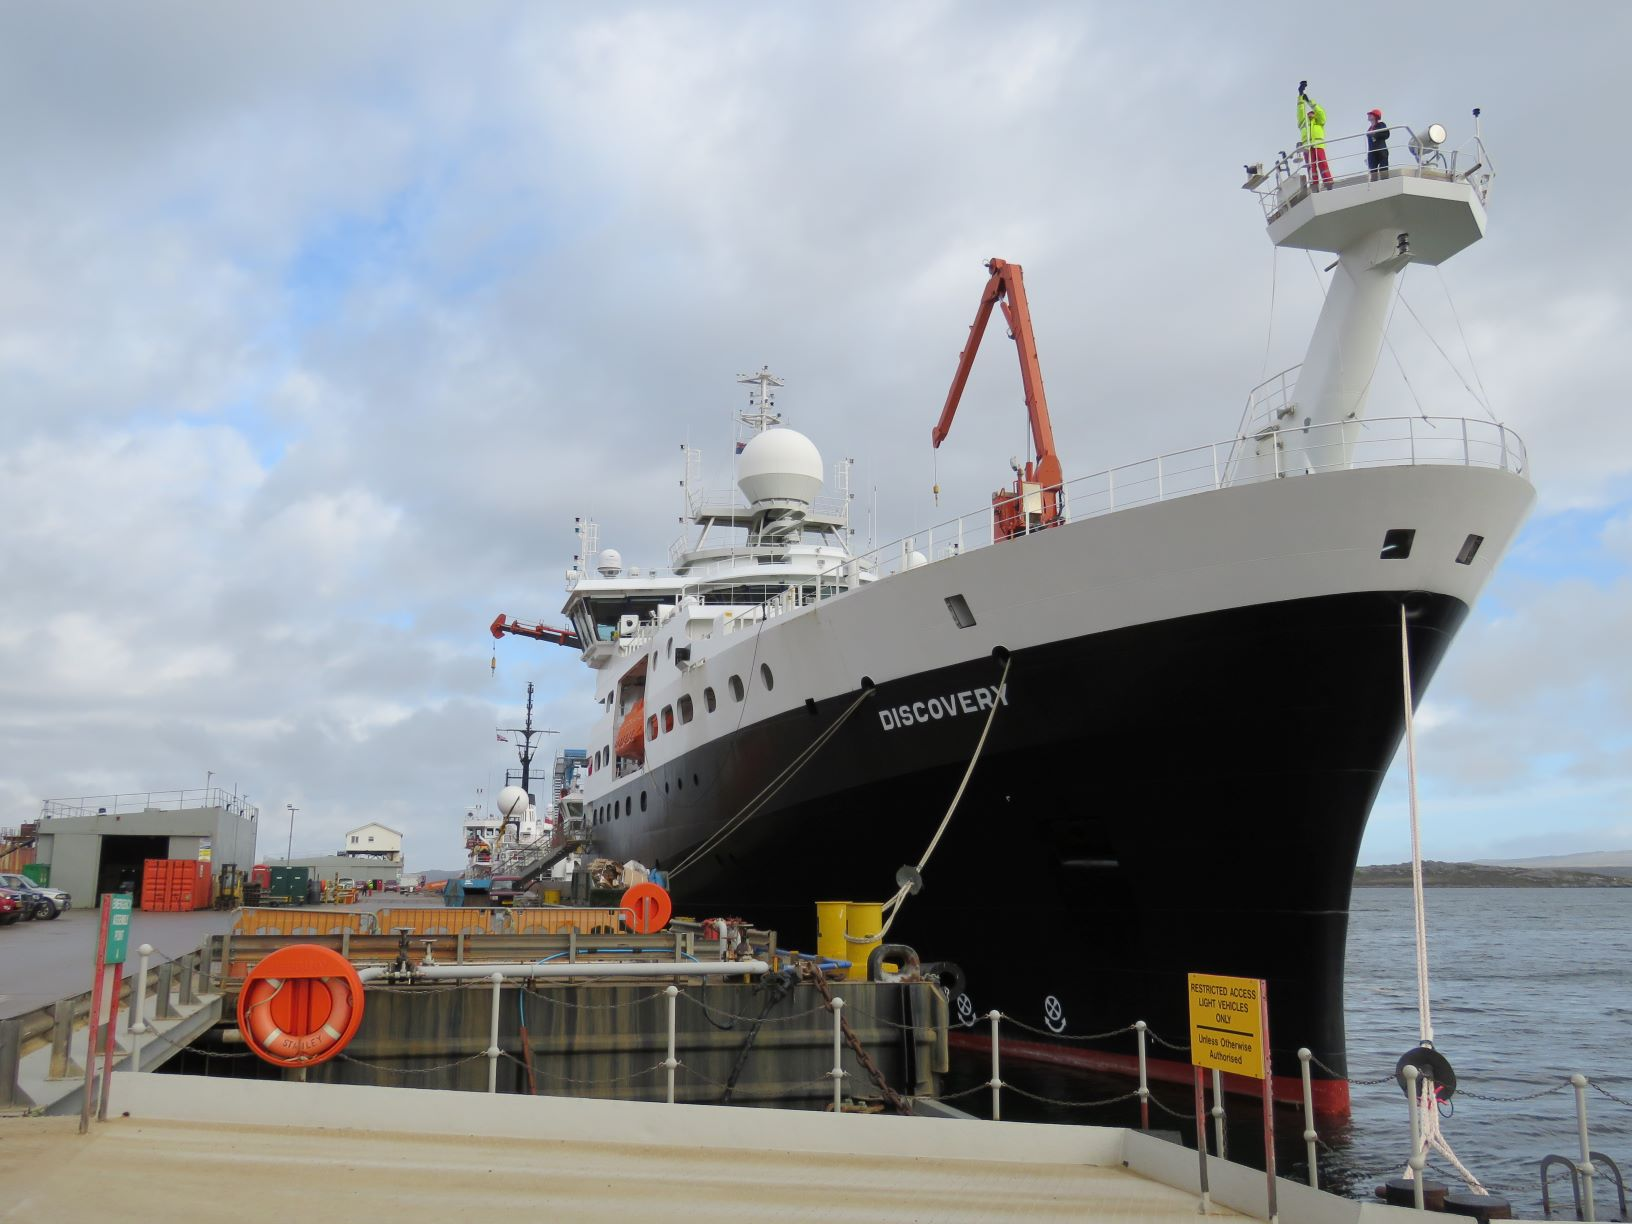 The RRS Discovery in port. Photo: Marthan Bester